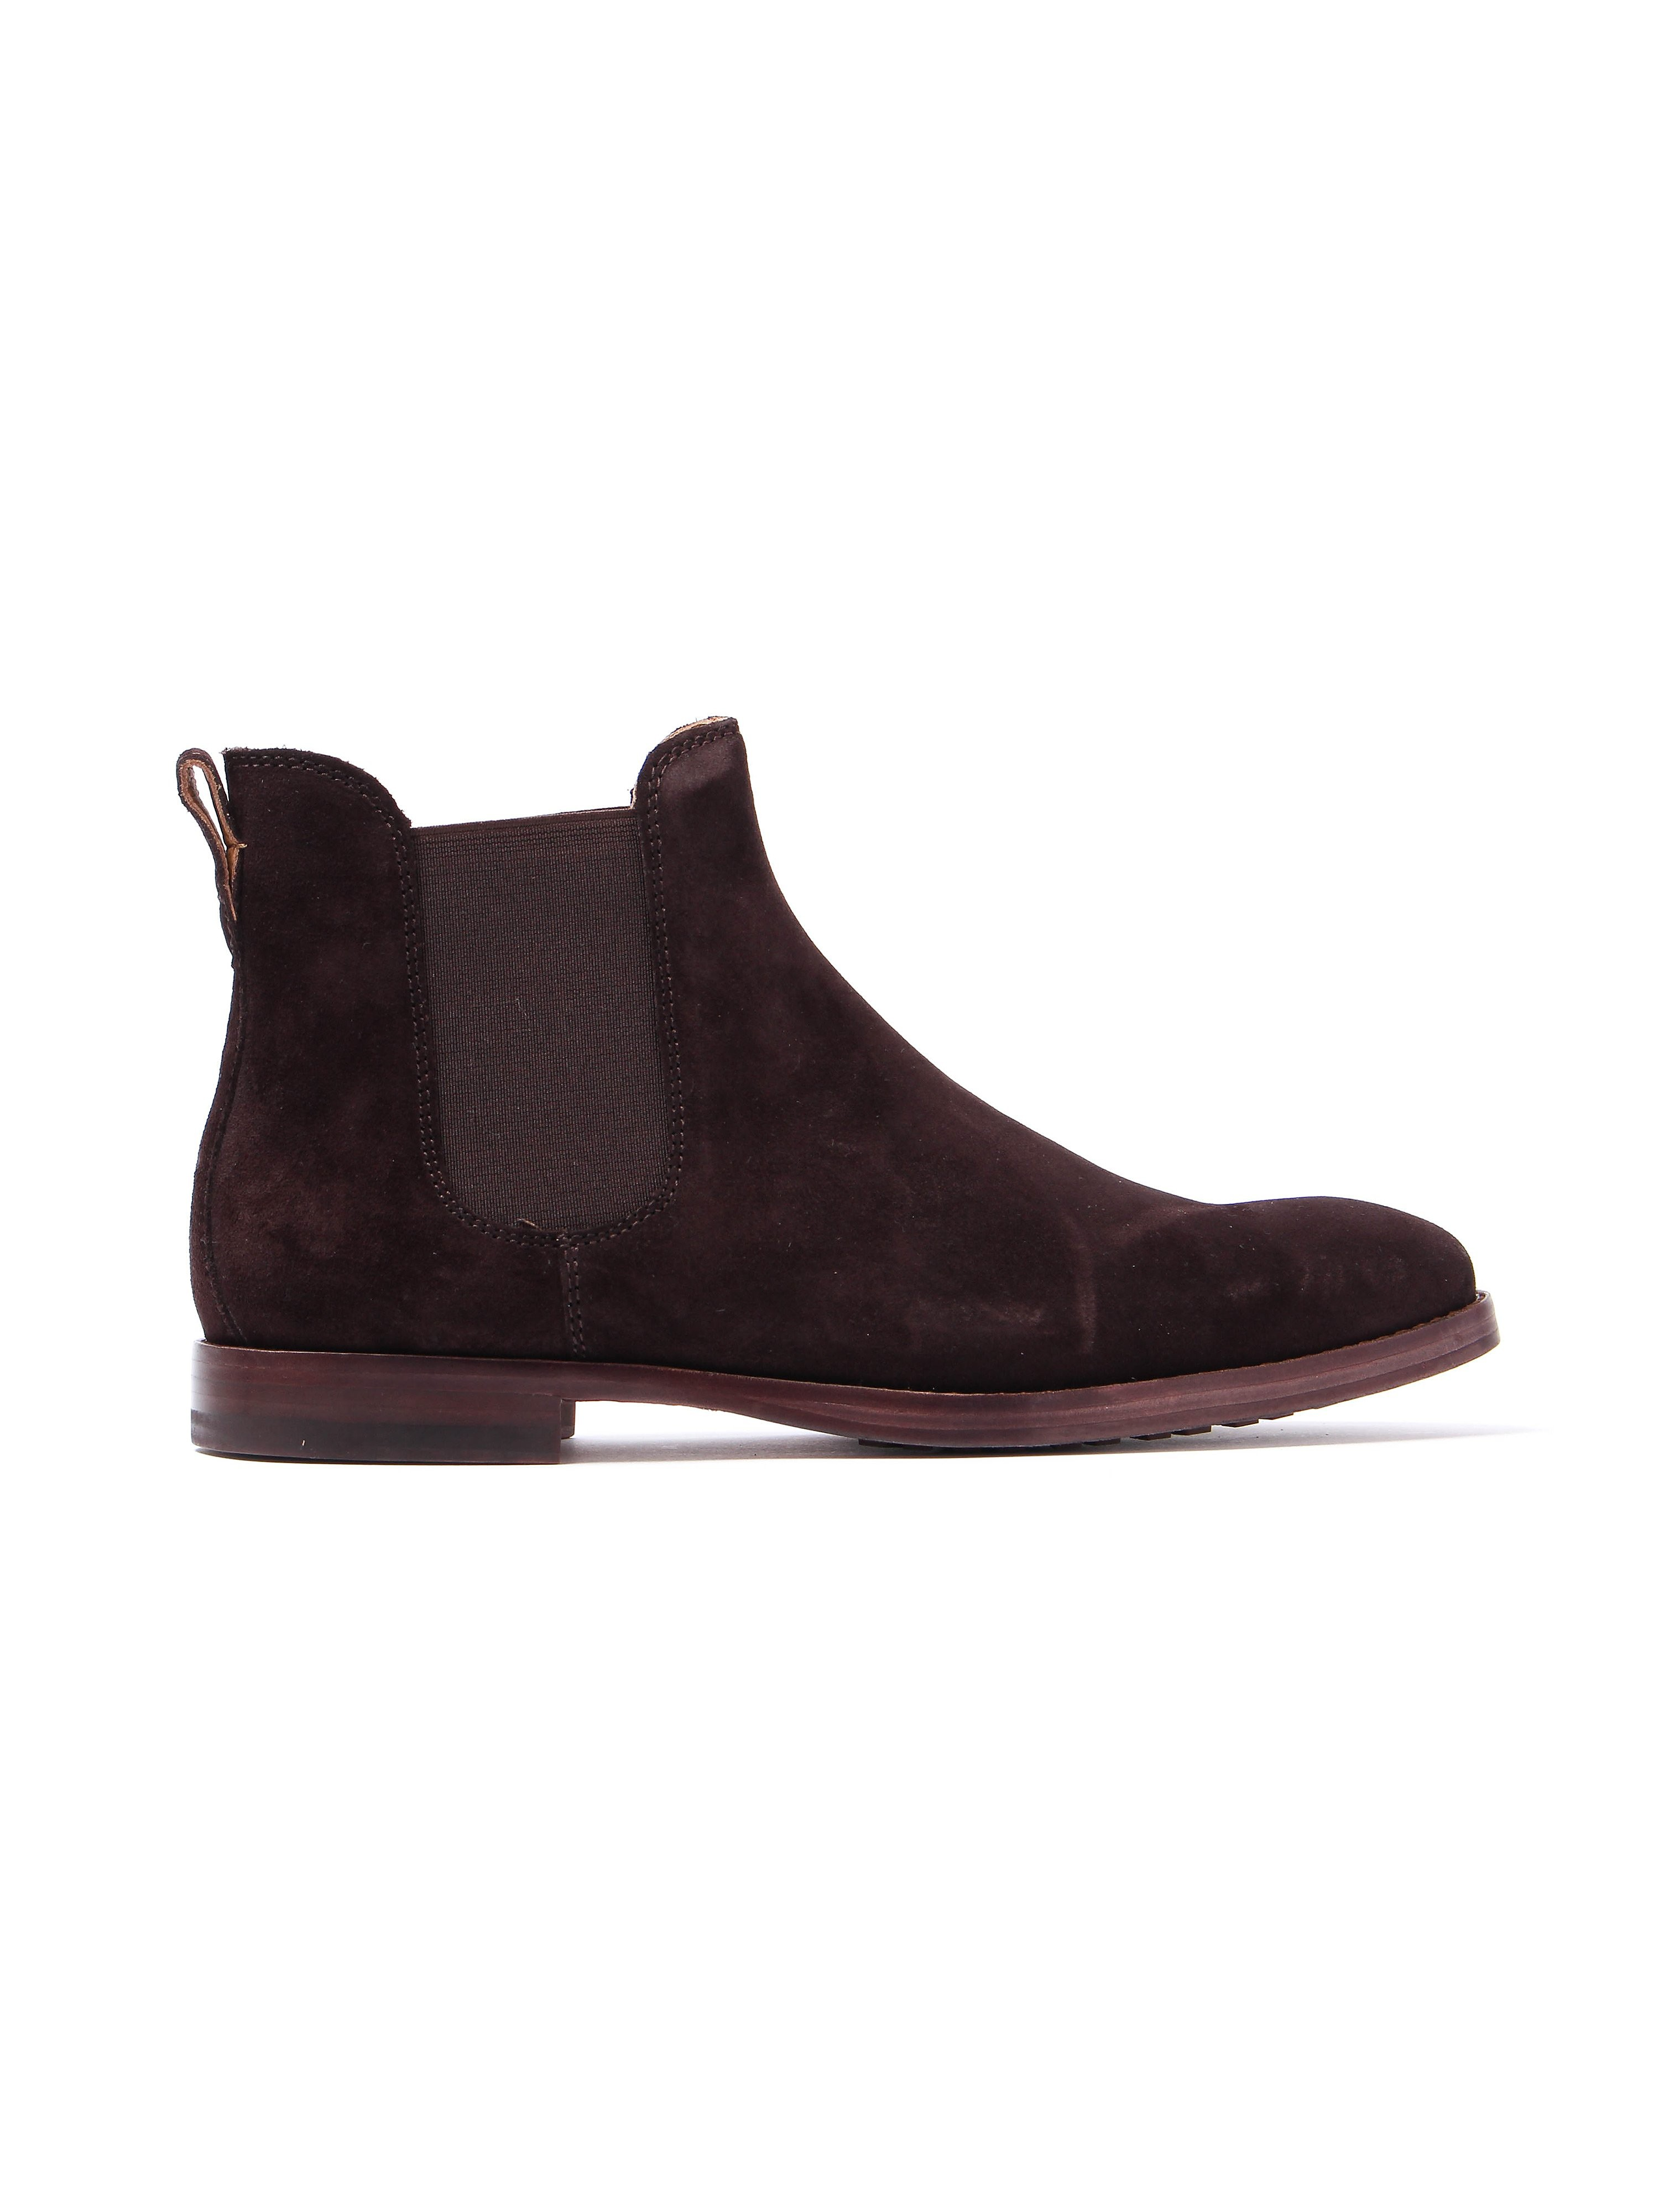 Polo Ralph Lauren Dillian II - Dark Brown